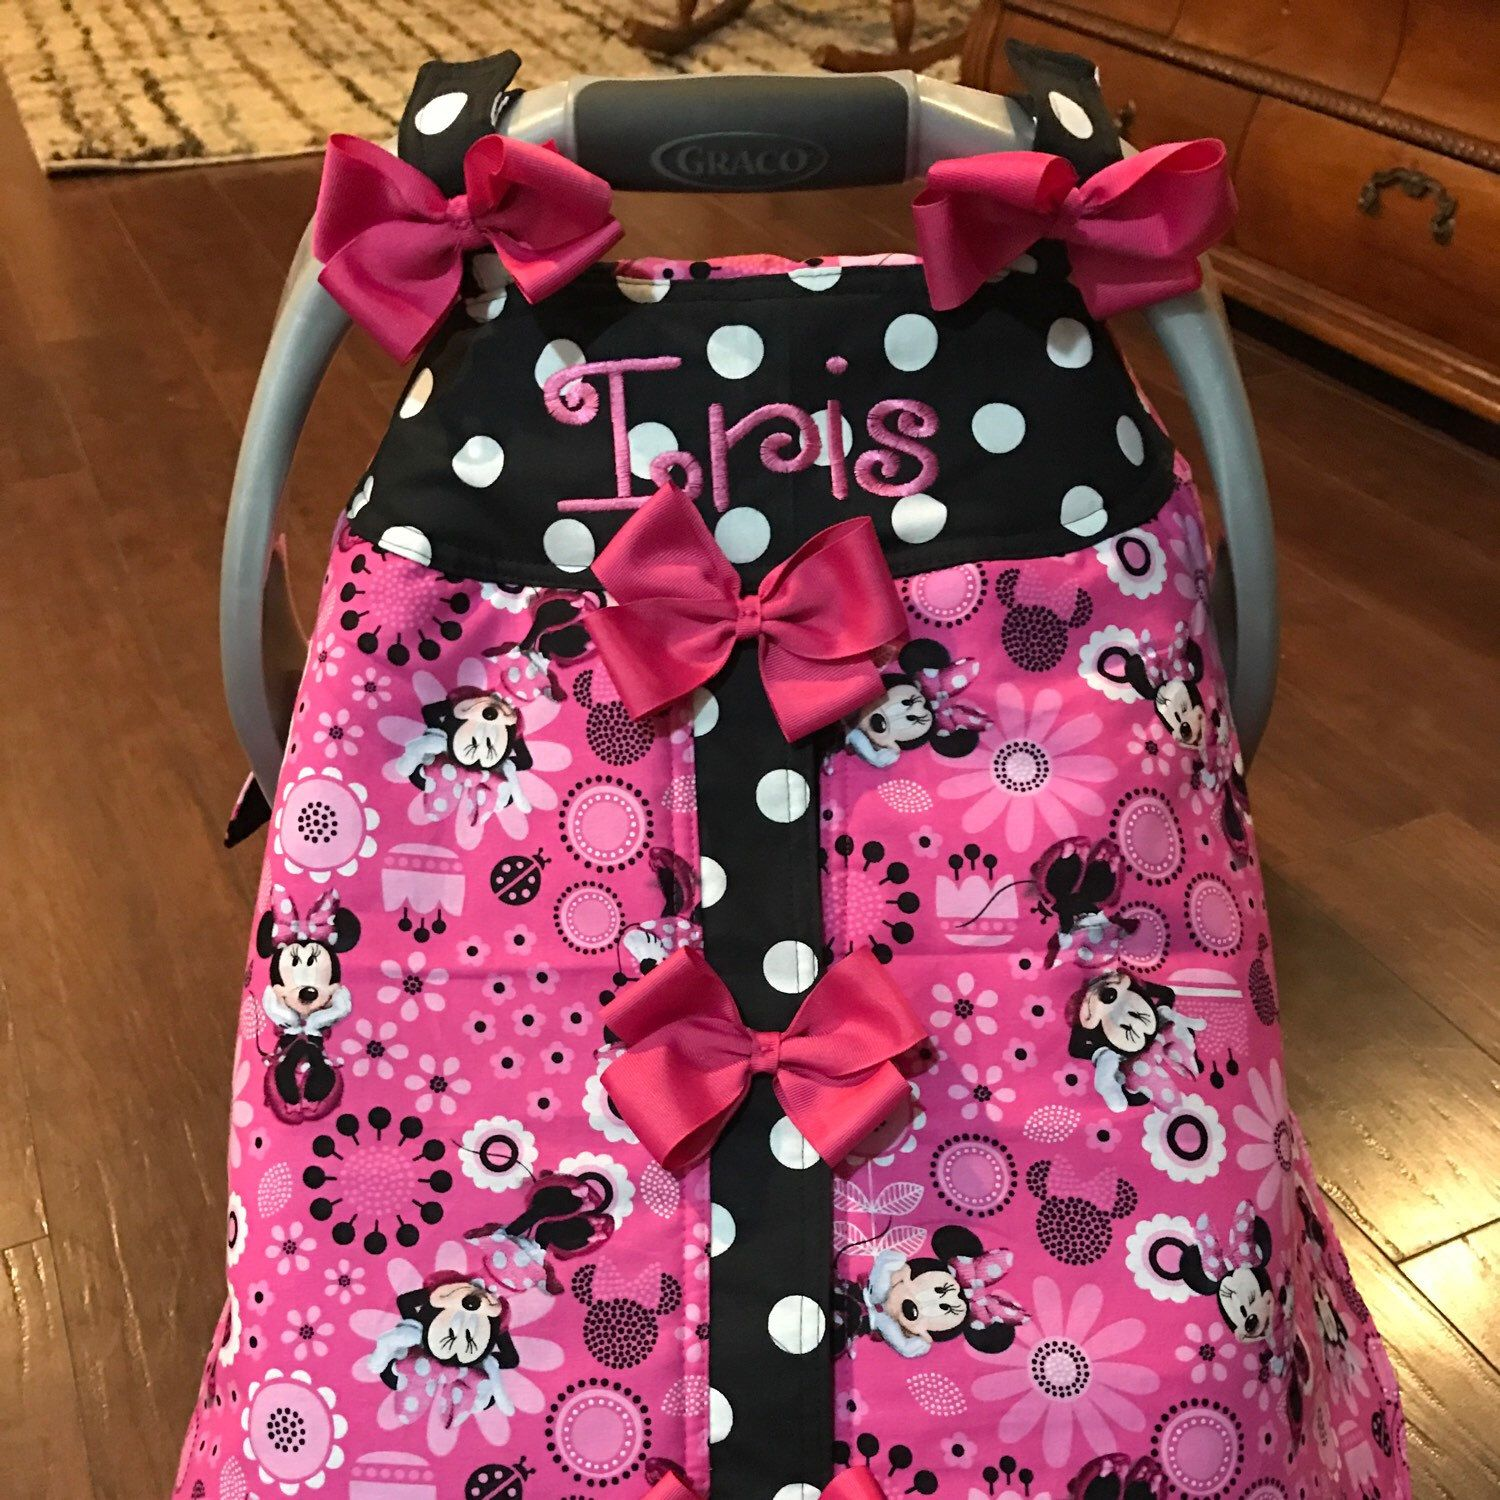 Minnie Mouse With Bows Handmade Baby Infant Car Seat Canopy Cover & Minnie mouse infant car seat canopy | Baby Toddlers quilts ...